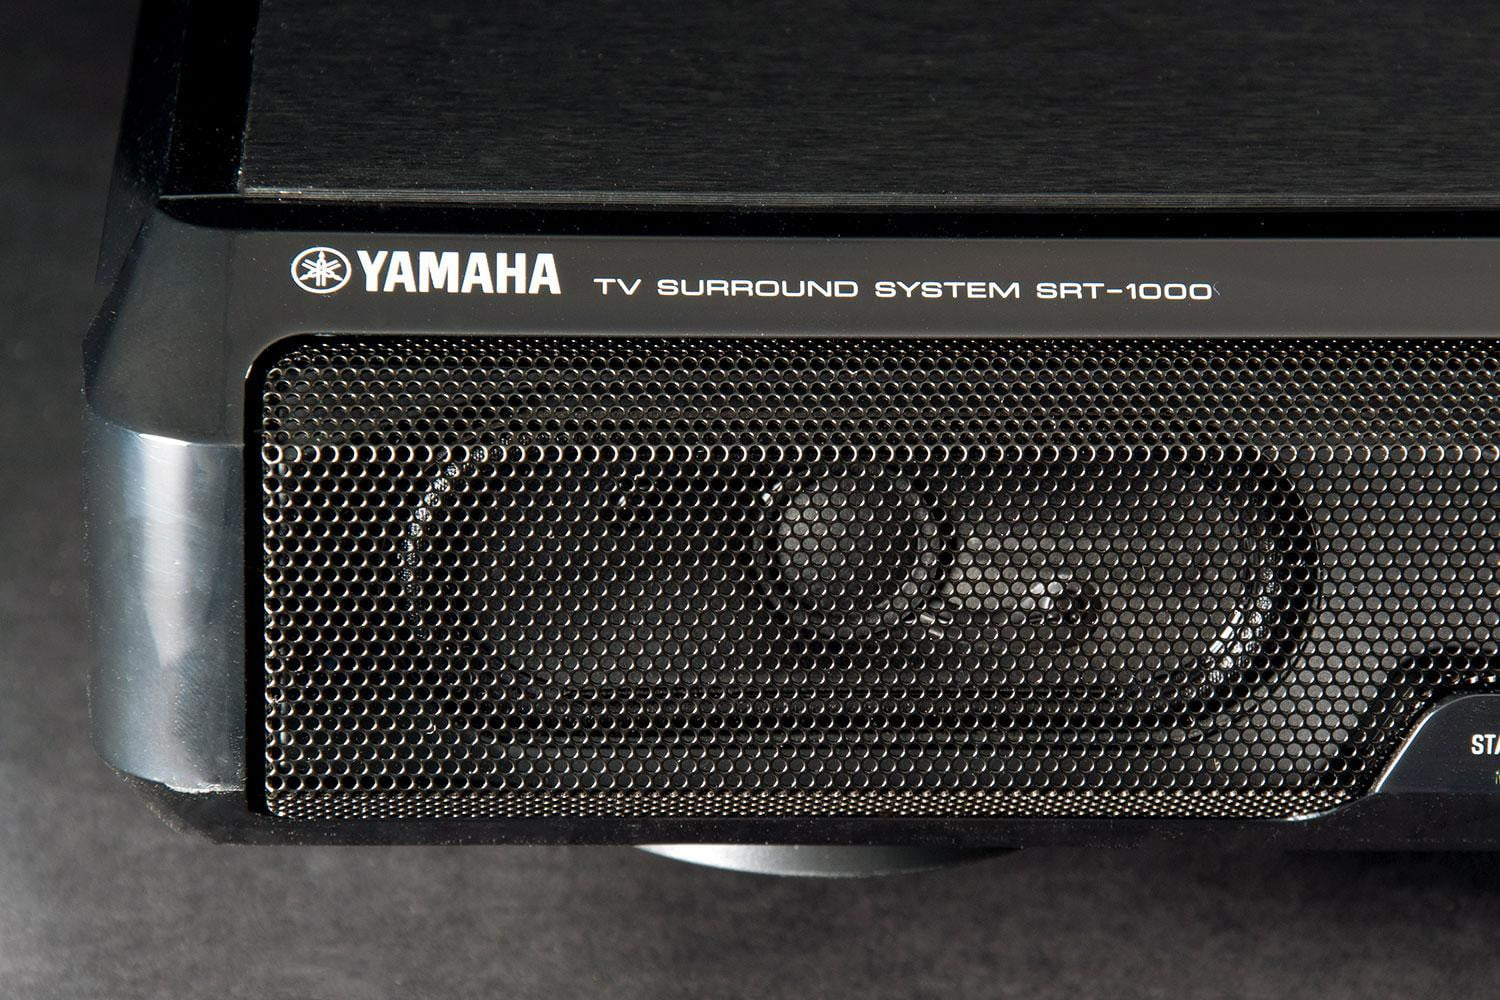 Yamaha places its convincing virtual surround tech in a for Yamaha surround system review